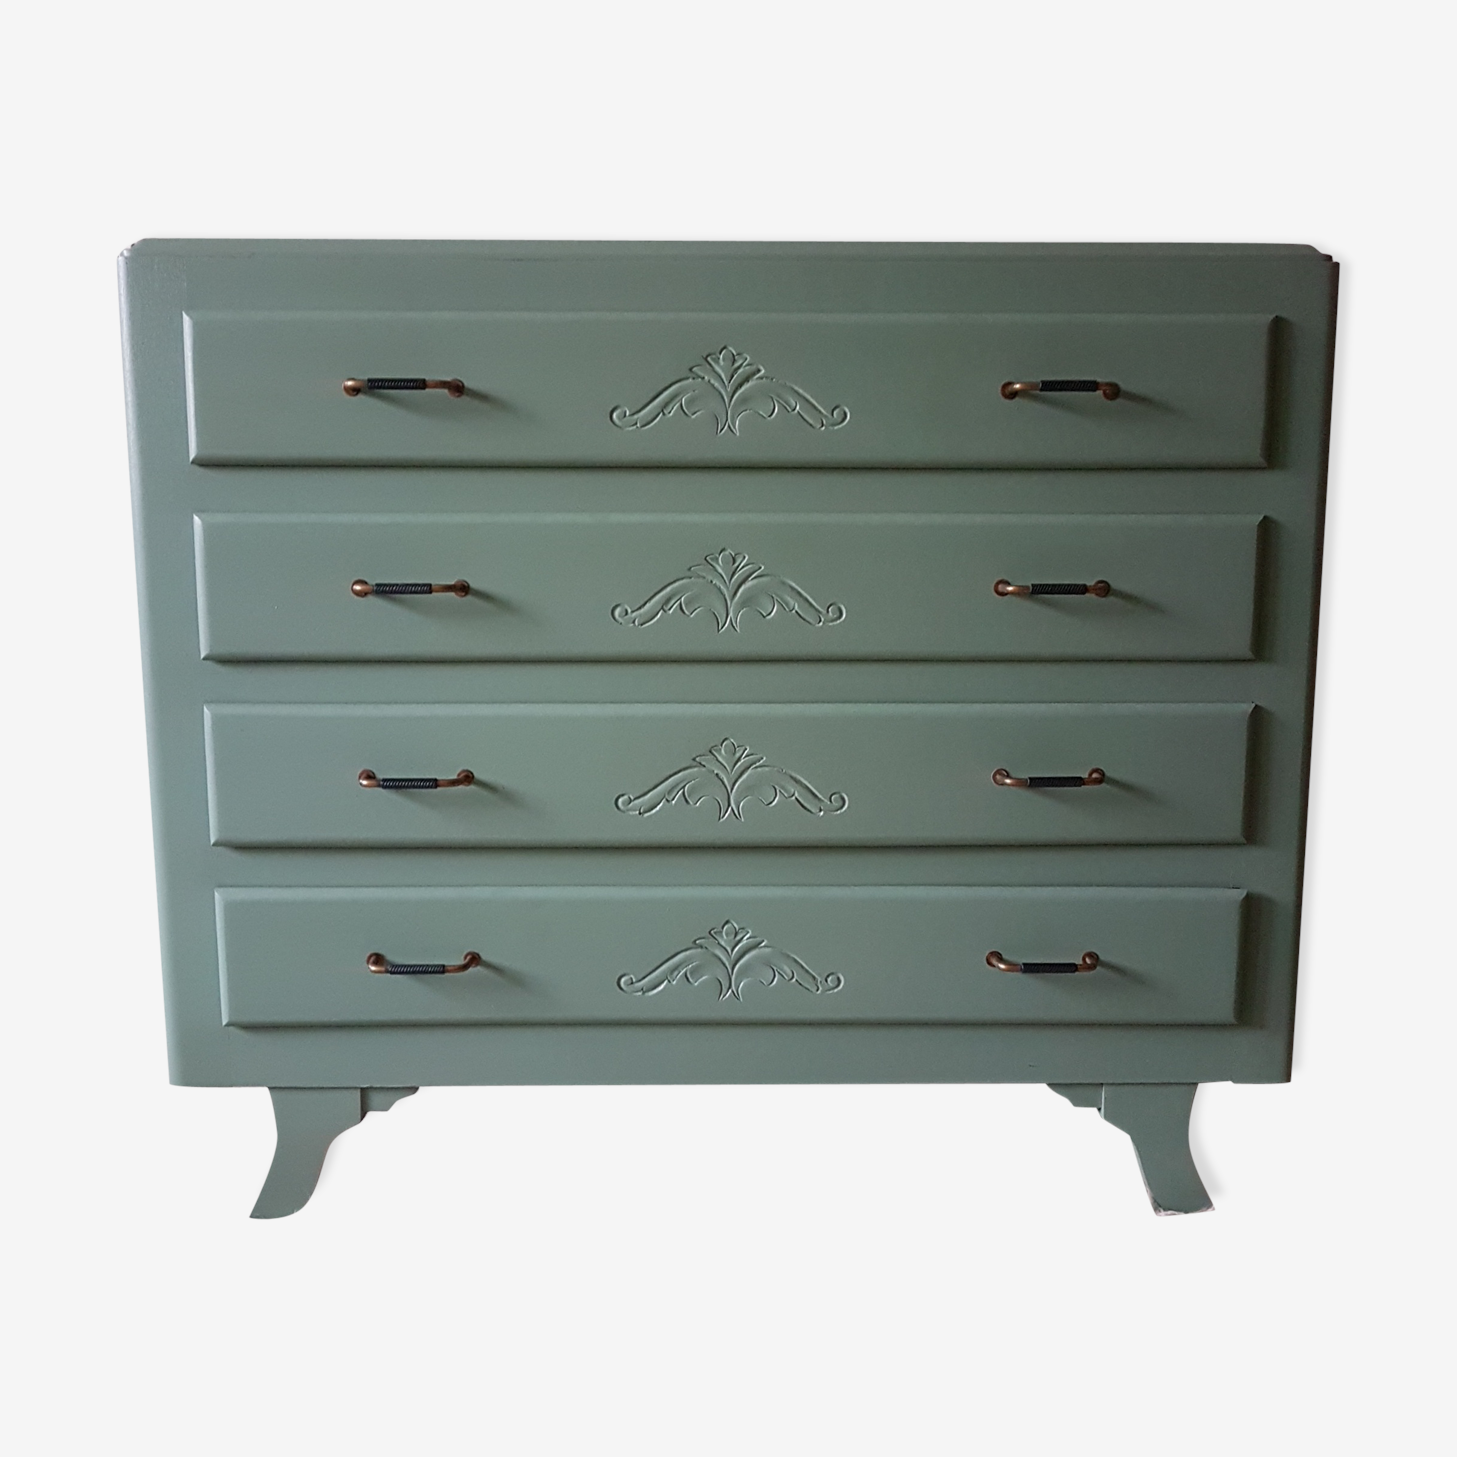 Chest of drawers art deco green Sage handle brass and black